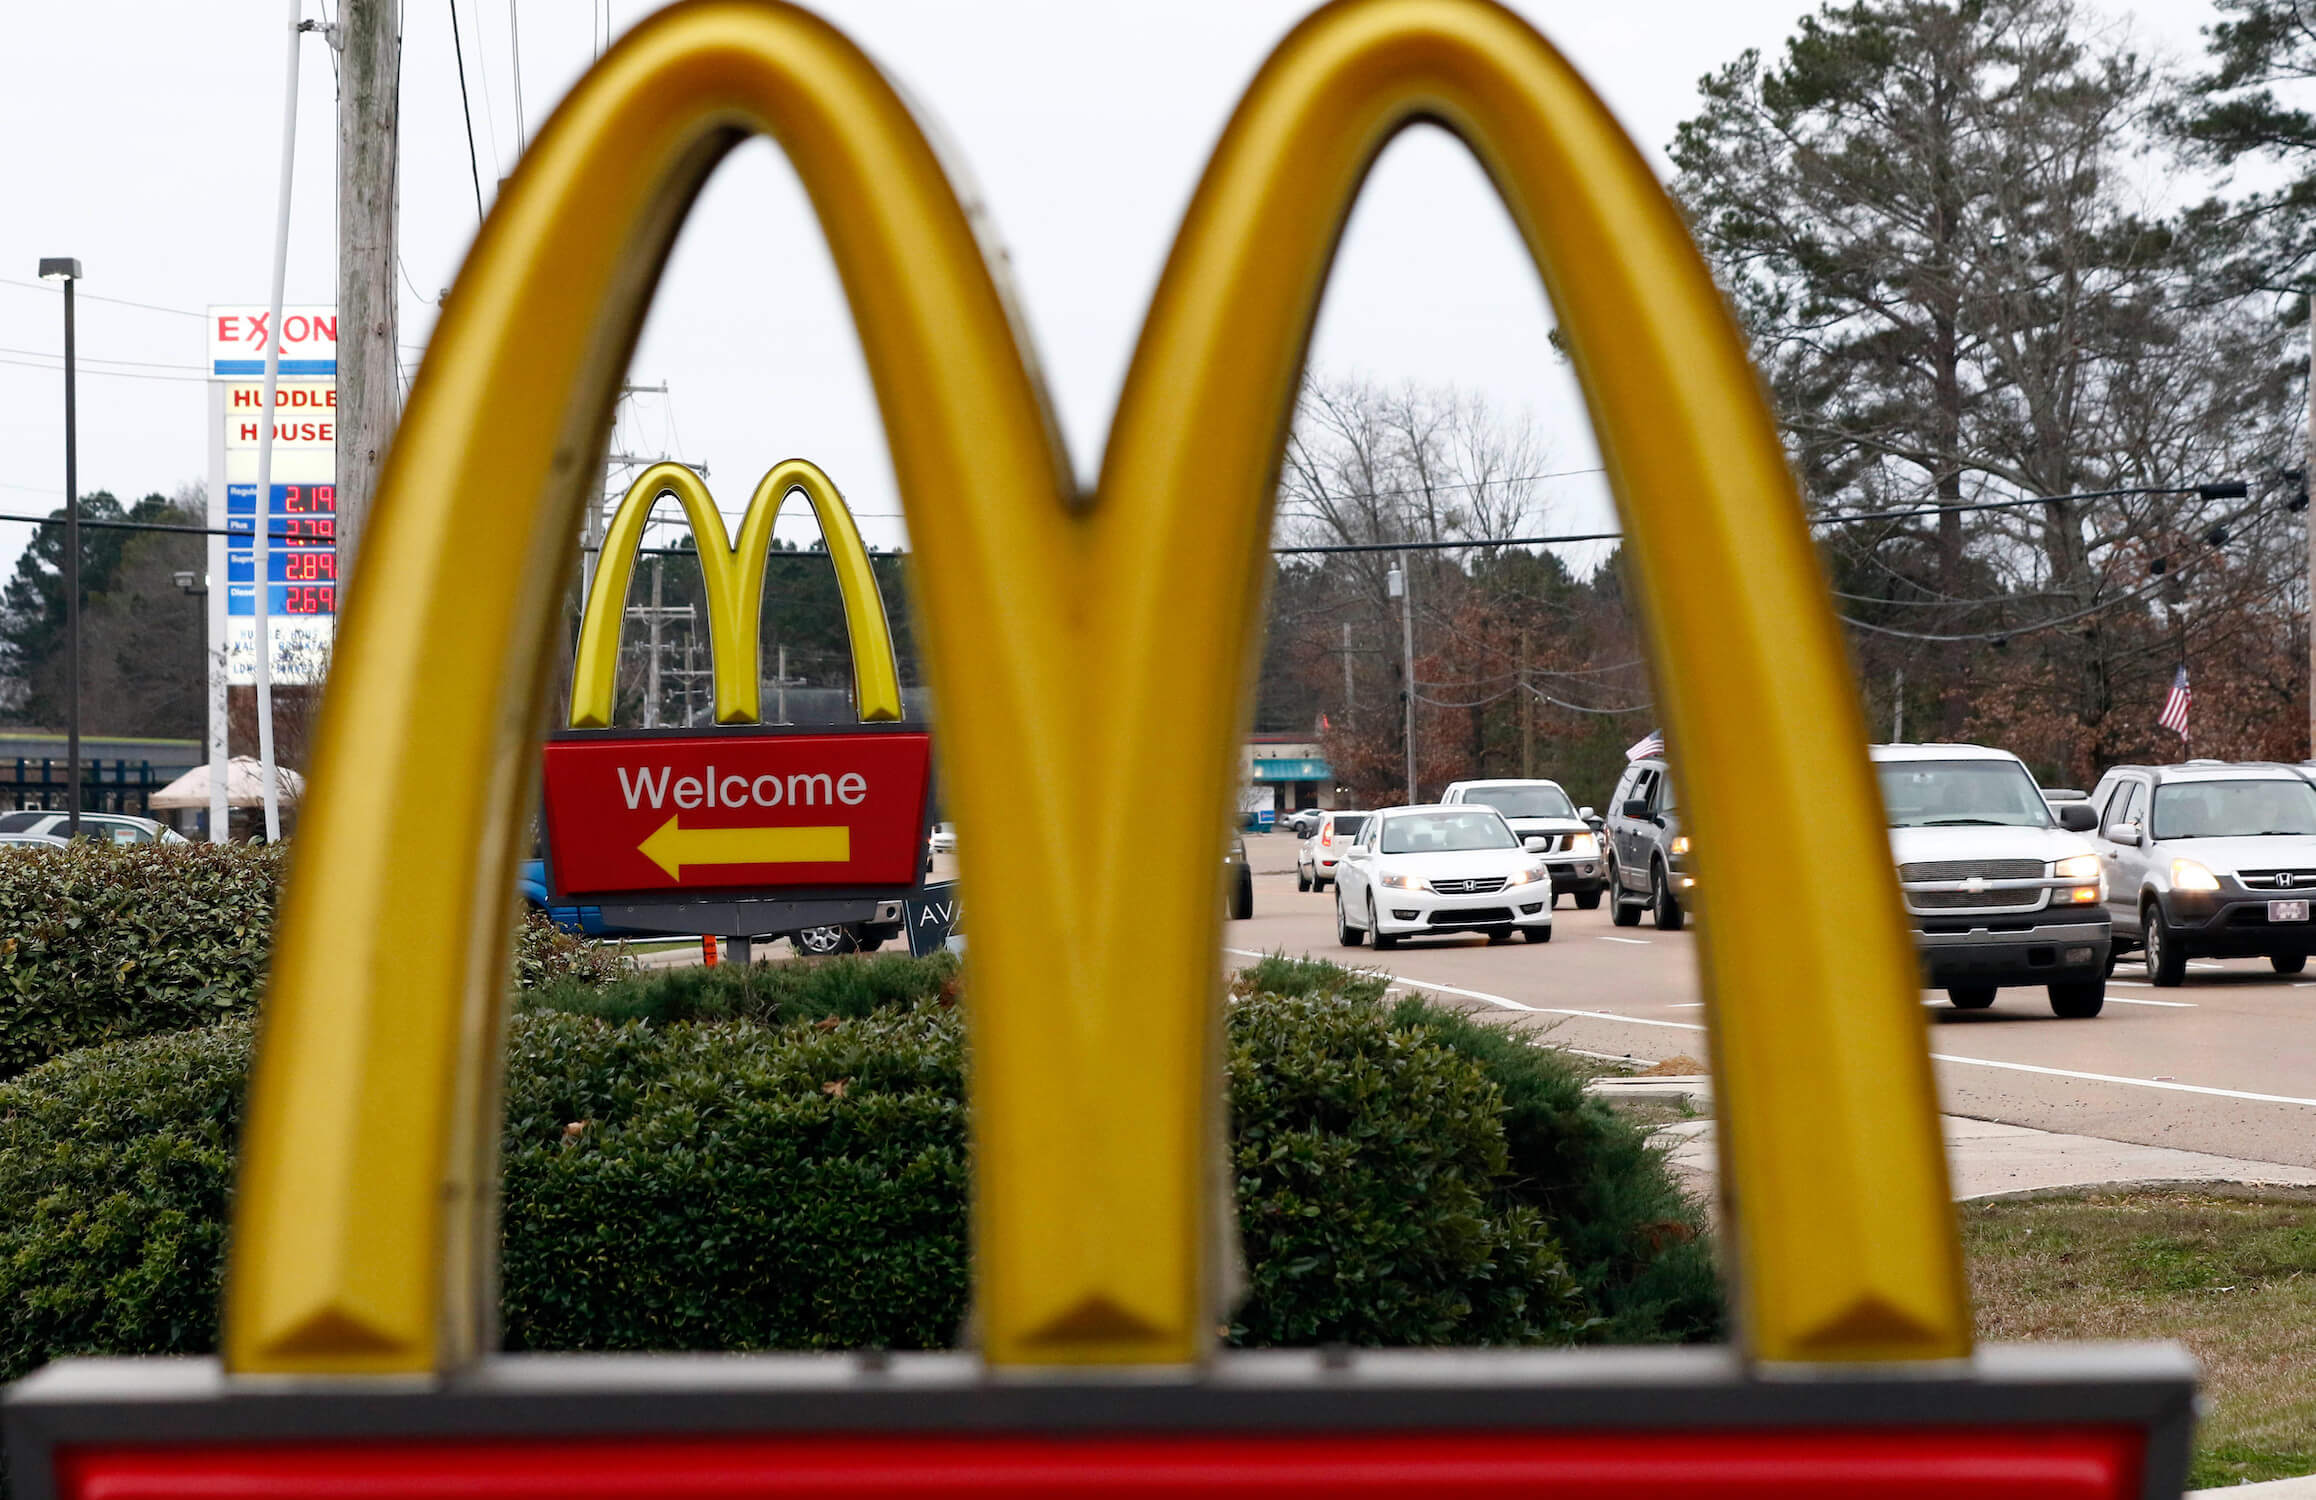 Seven national fast-food chains have agreed to end policies that block workers from changing branches, limiting their wages and job opportunities, under the threat of legal action from the state of Washington.